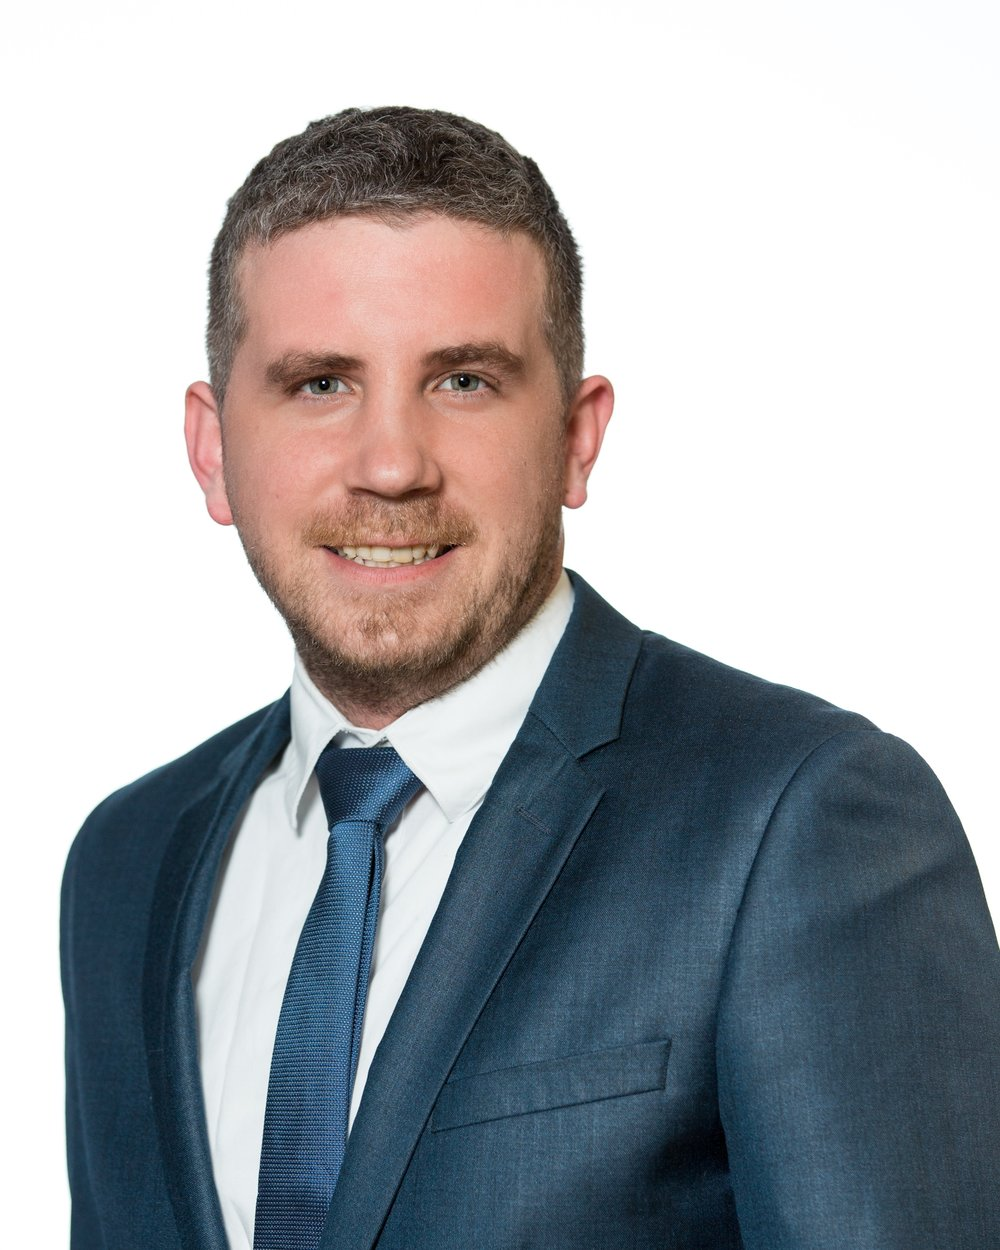 ALAN O'KELLY - OFFICE MANAGER